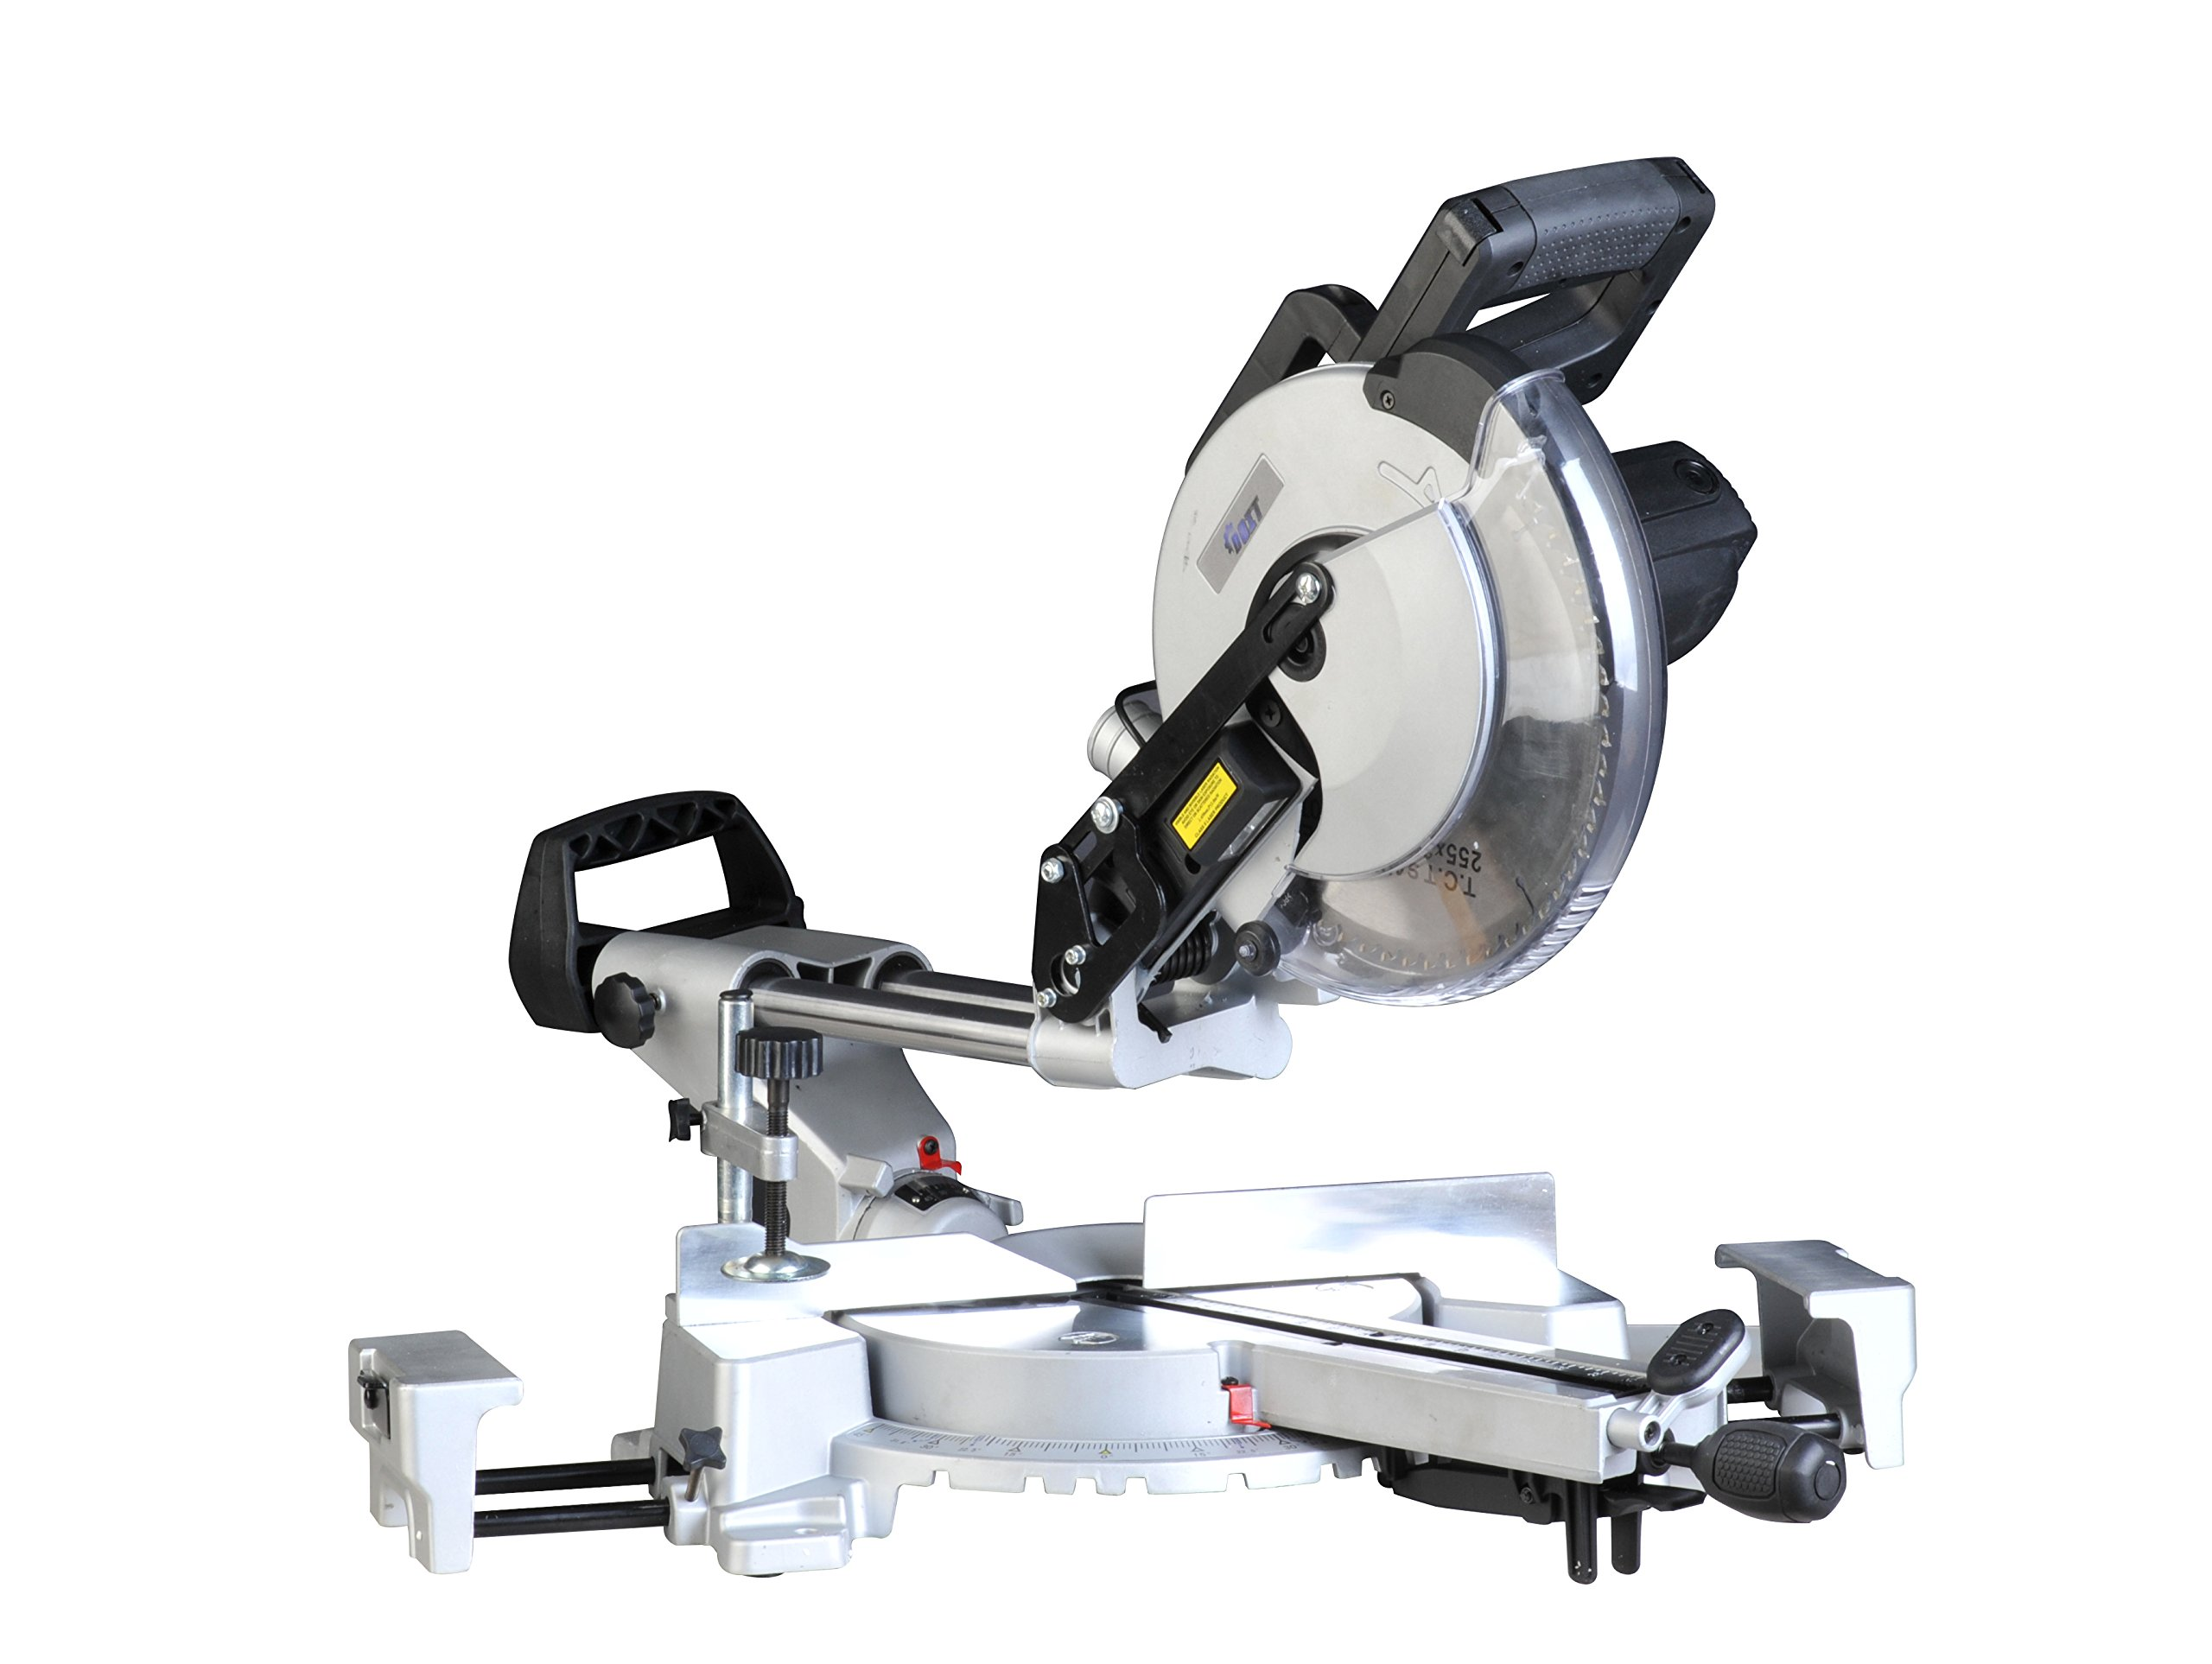 Doitpower 15-Amp 10-Inch Sliding Compound Miter Saw (Equipped with LED Work Light and CarryHandle )